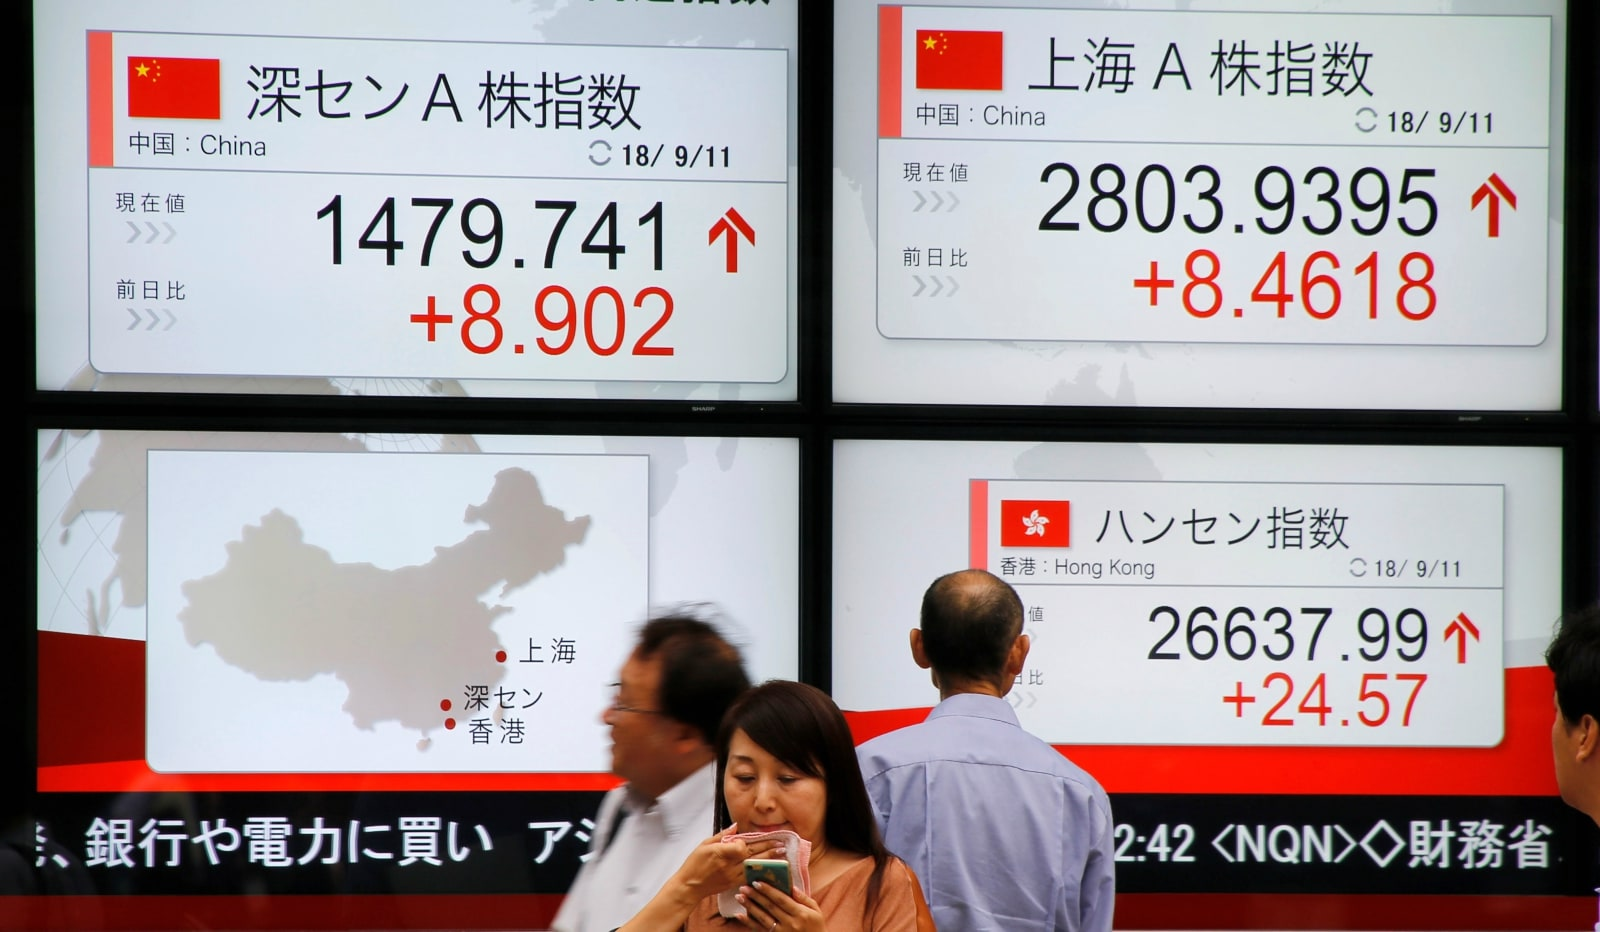 1. Asia: MSCI's broadest index of Asia-Pacific shares outside Japan inched up 0.50 percent. The Nikkei in Japan slipped 0.52 percent, South Korea's KOSPI fell 0.11 percent. Australian stocks added 0.15 percent. (Image: Reuters)